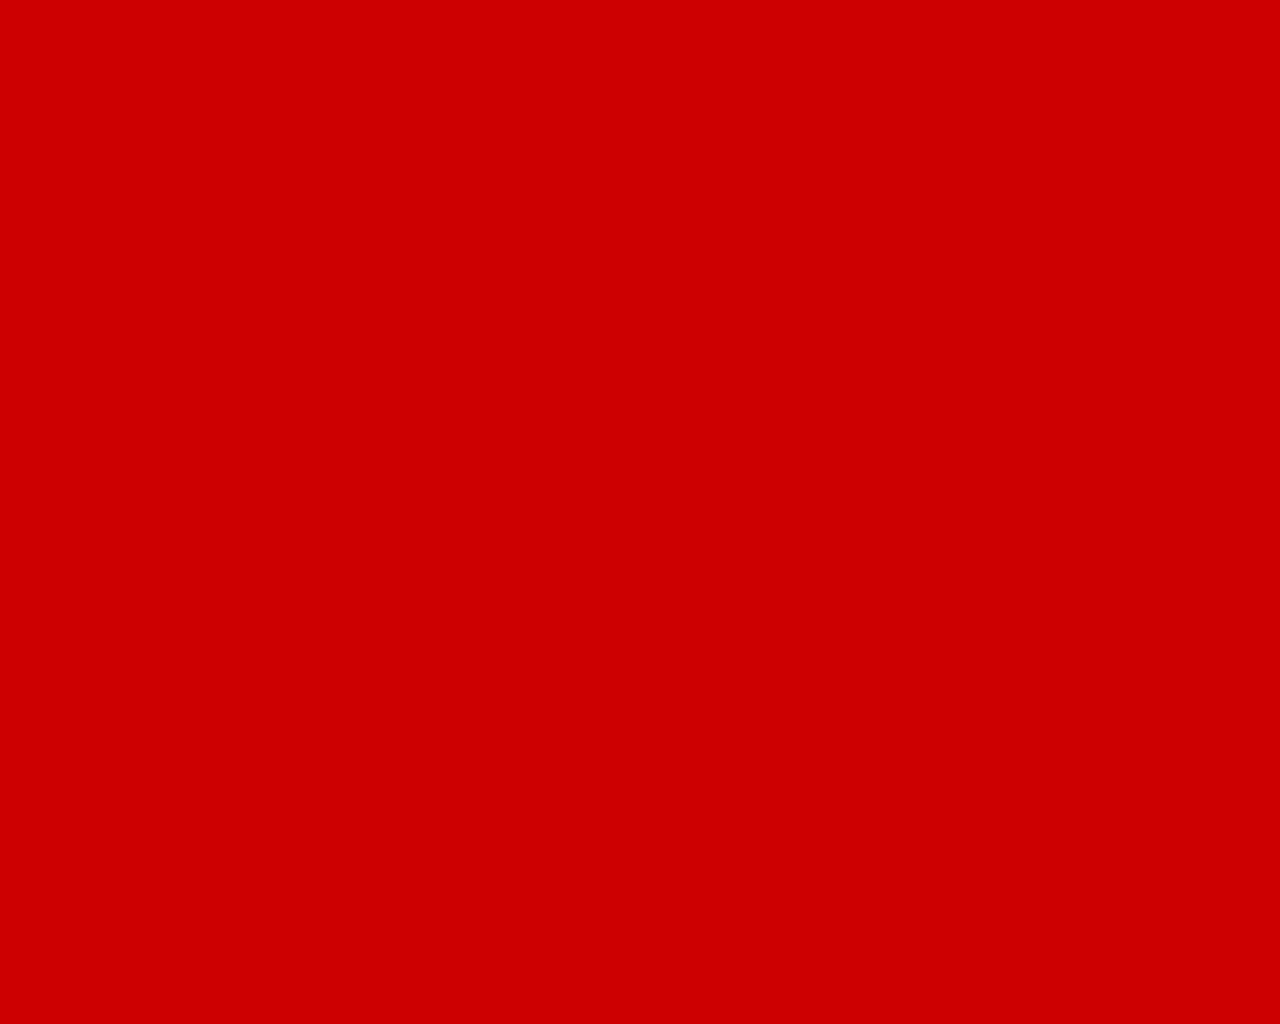 1280x1024 Boston University Red Solid Color Background